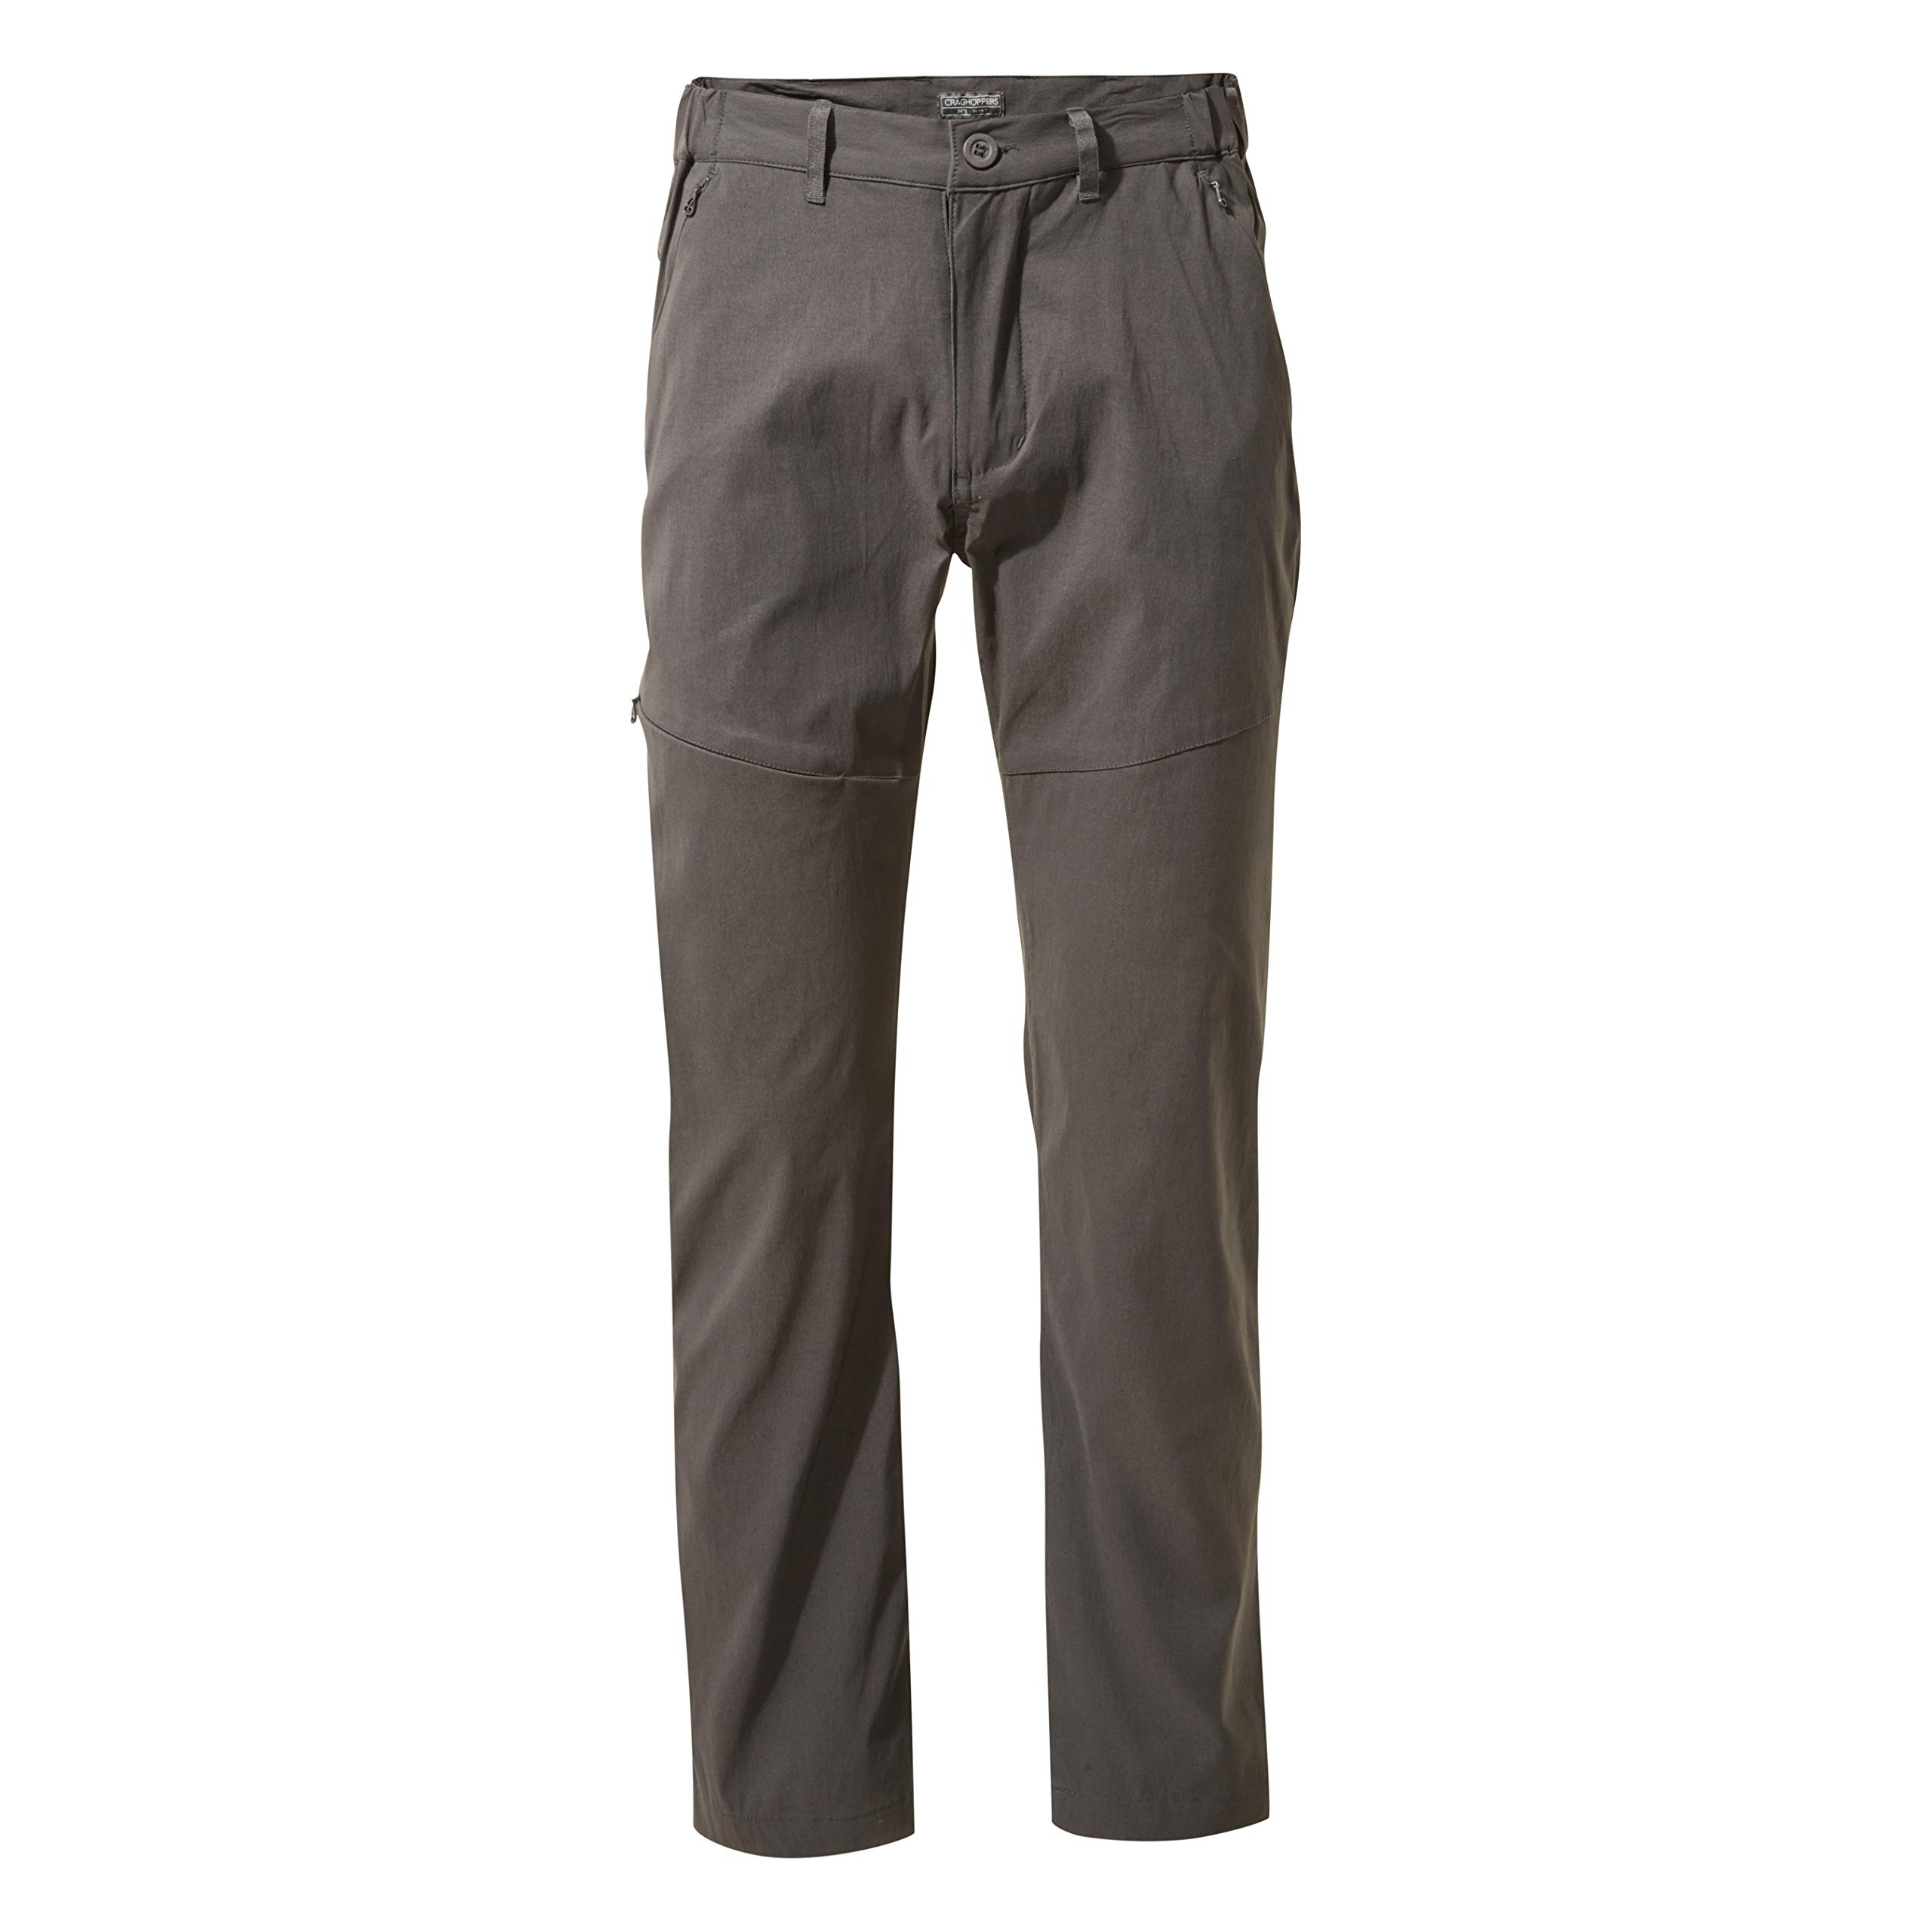 Craghoppers Men's Kiwi Pro Pants Active Fit Lightweight Stretchy UHP 50+ Water Repellent Trousers